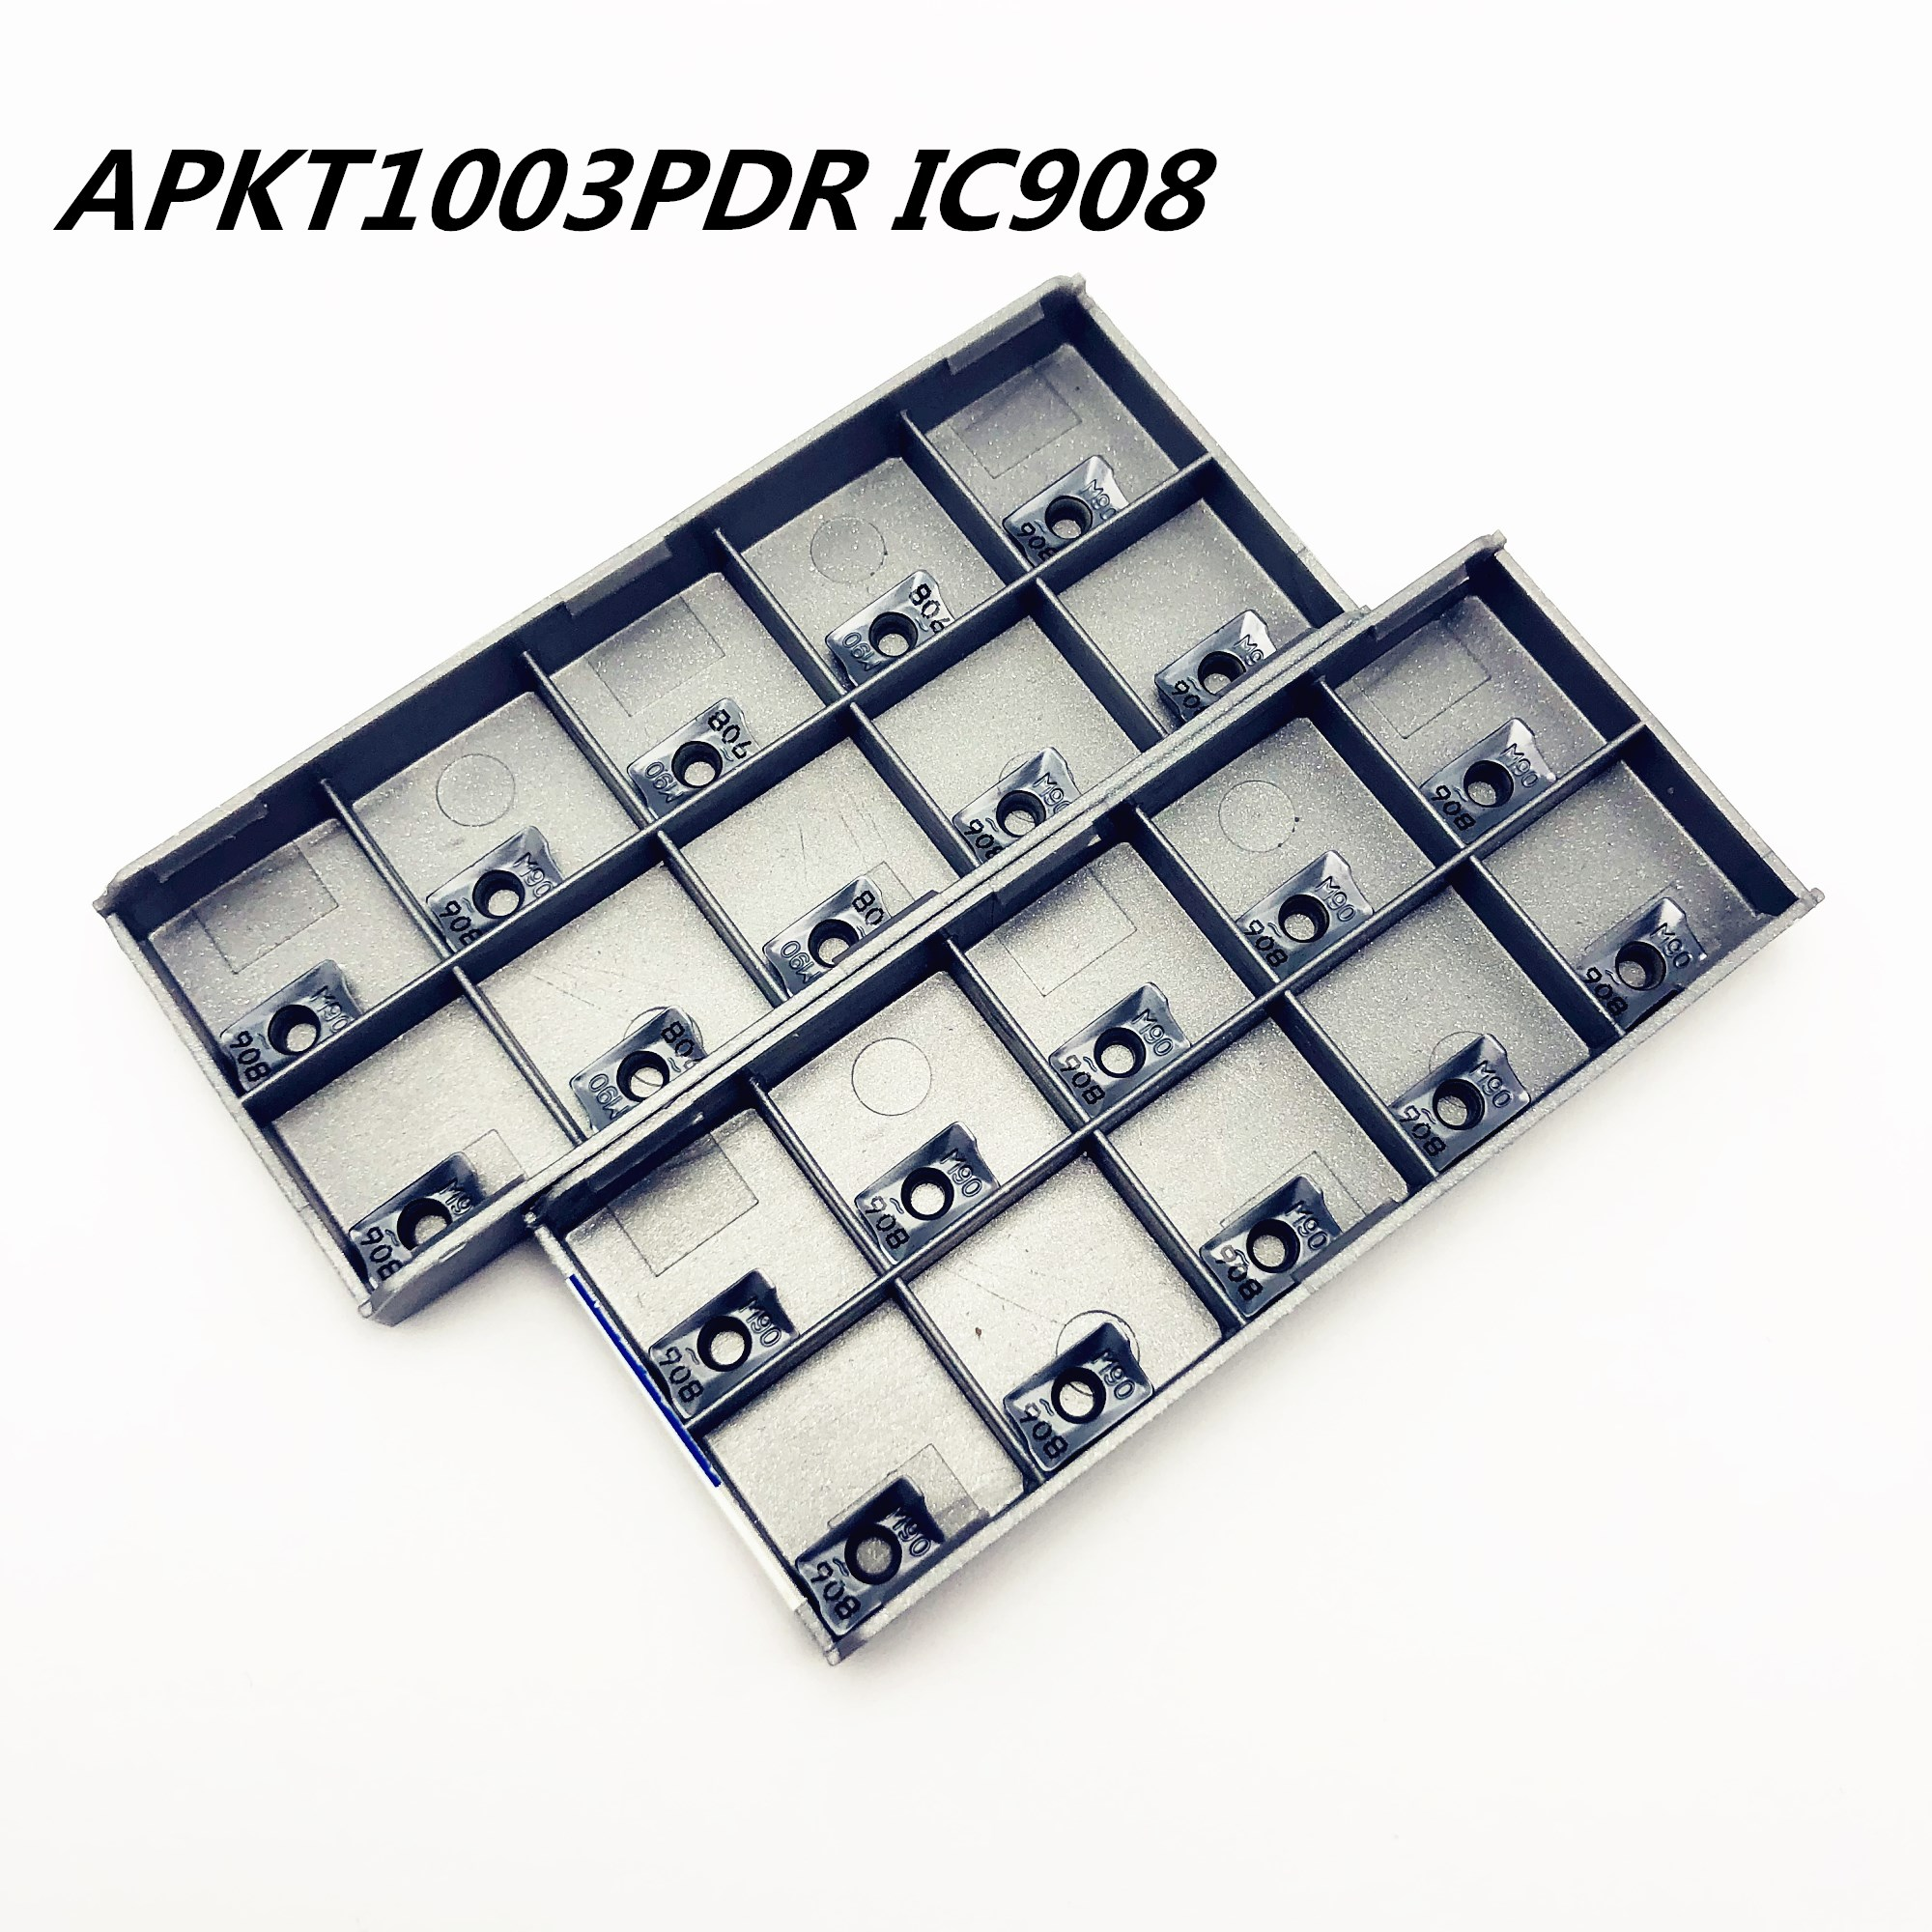 100PCS APKT 1003PDR IC908 High Precision Internal Round Metal Turning Tool Milling Tool APKT 1003 Carbide